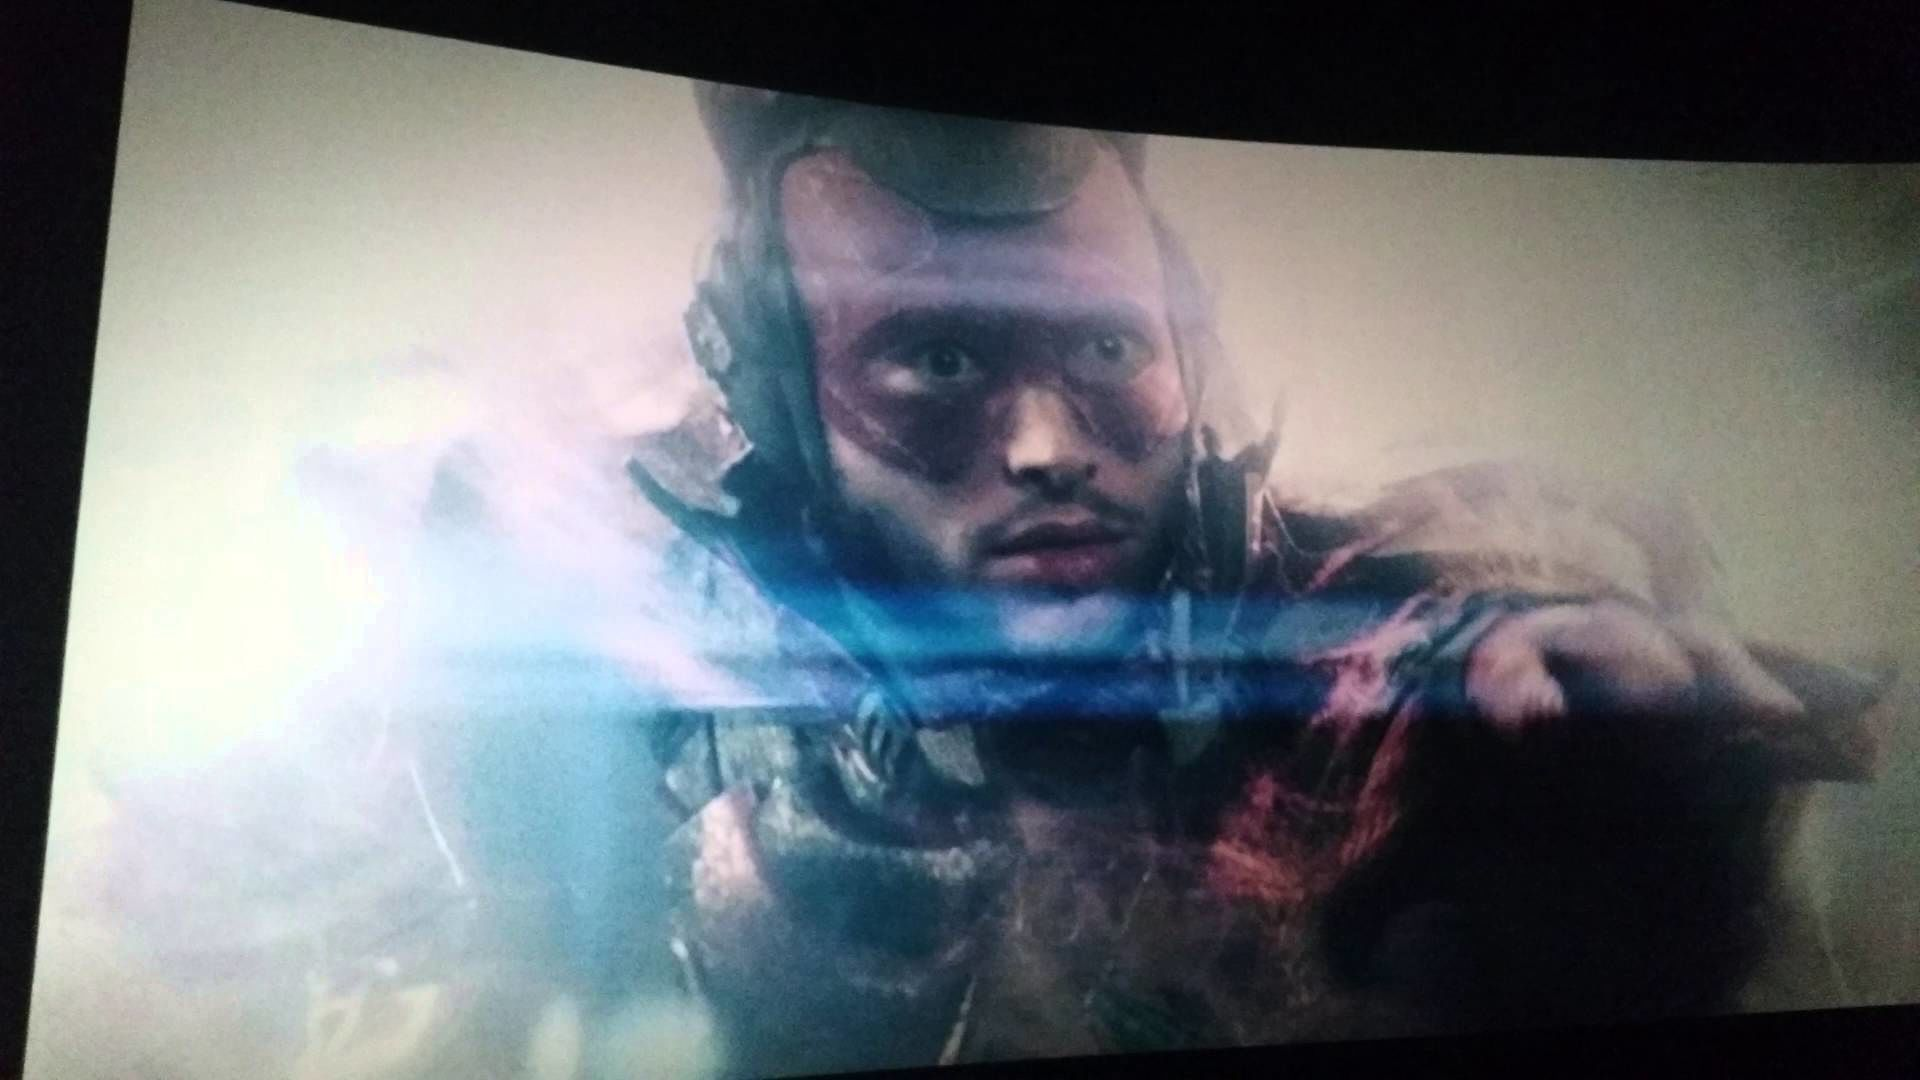 time-travel-resurrection-greek-mythology-more-dceu-is-gearing-up-to-push-things-over-977158